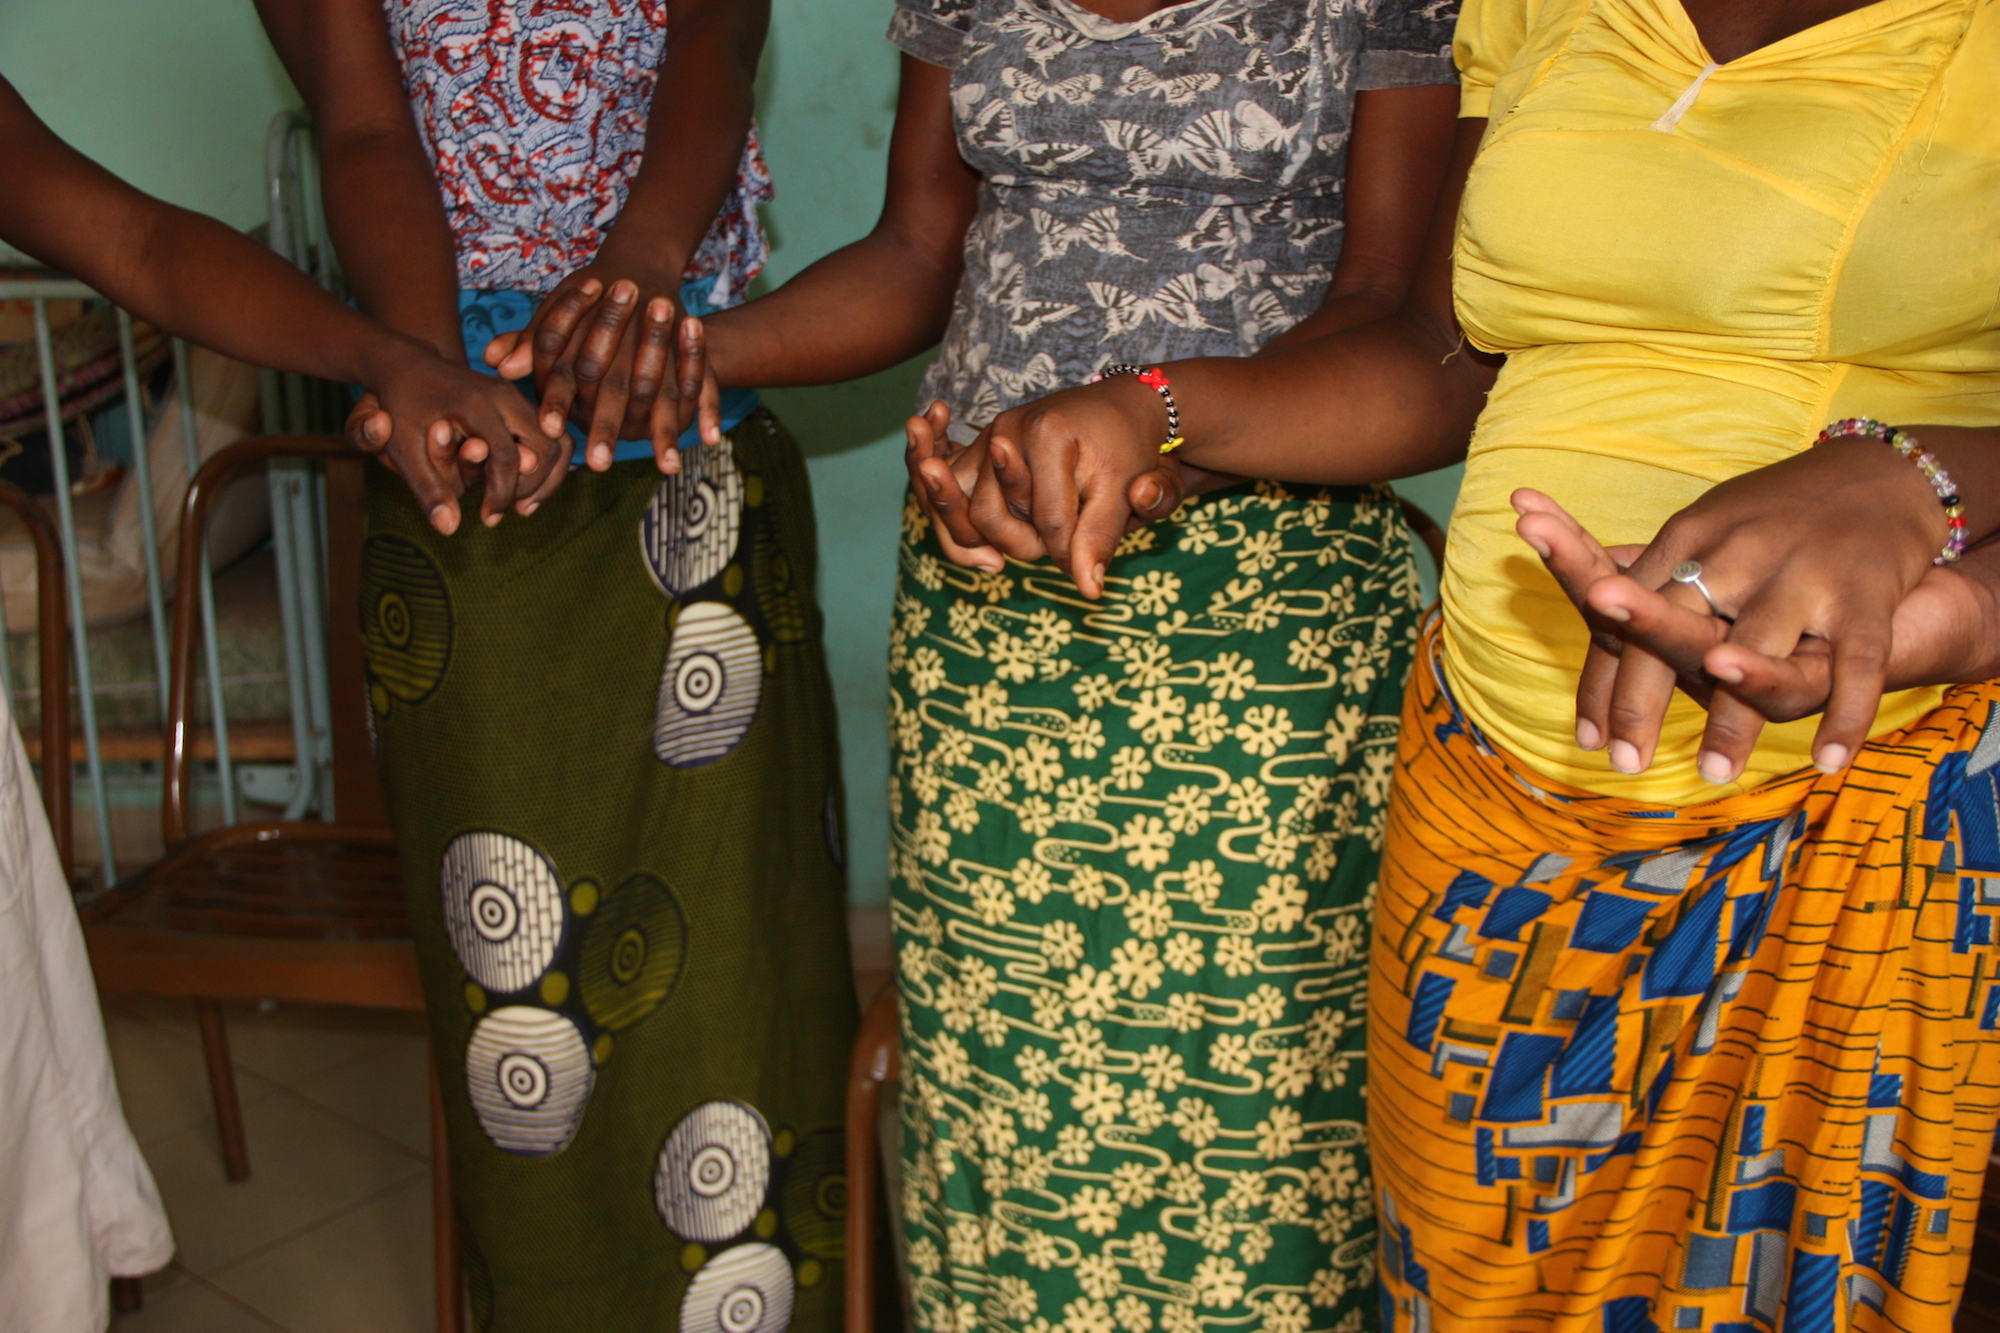 Young women hold hands in a shelter run by Nuns, these young women have courageously fled forced marriage or early and unwanted pregnancies. Ouagadougou. July 2014